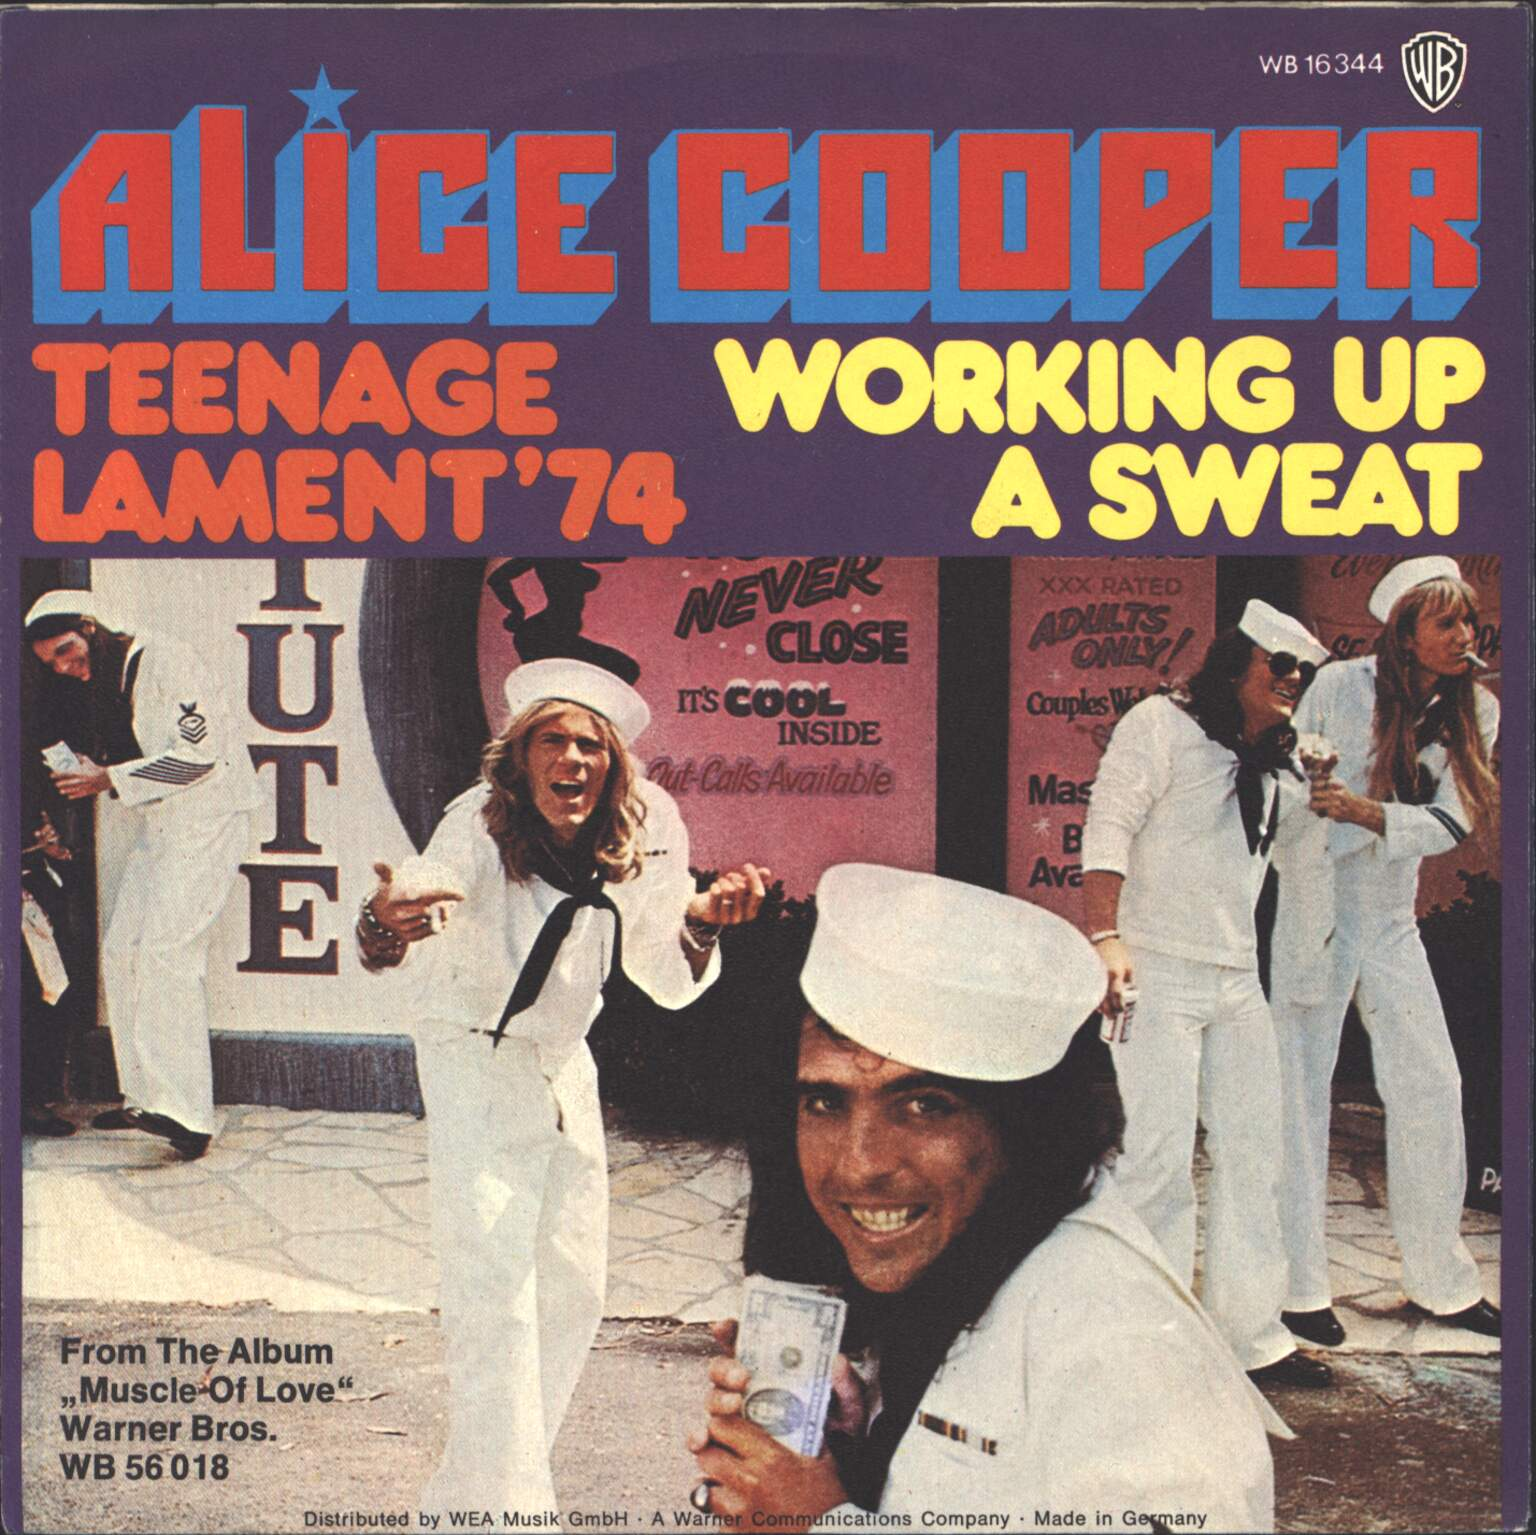 "Alice Cooper: Teenage Lament '74 / Working Up A Sweat, 1×7"" Single (Vinyl)"